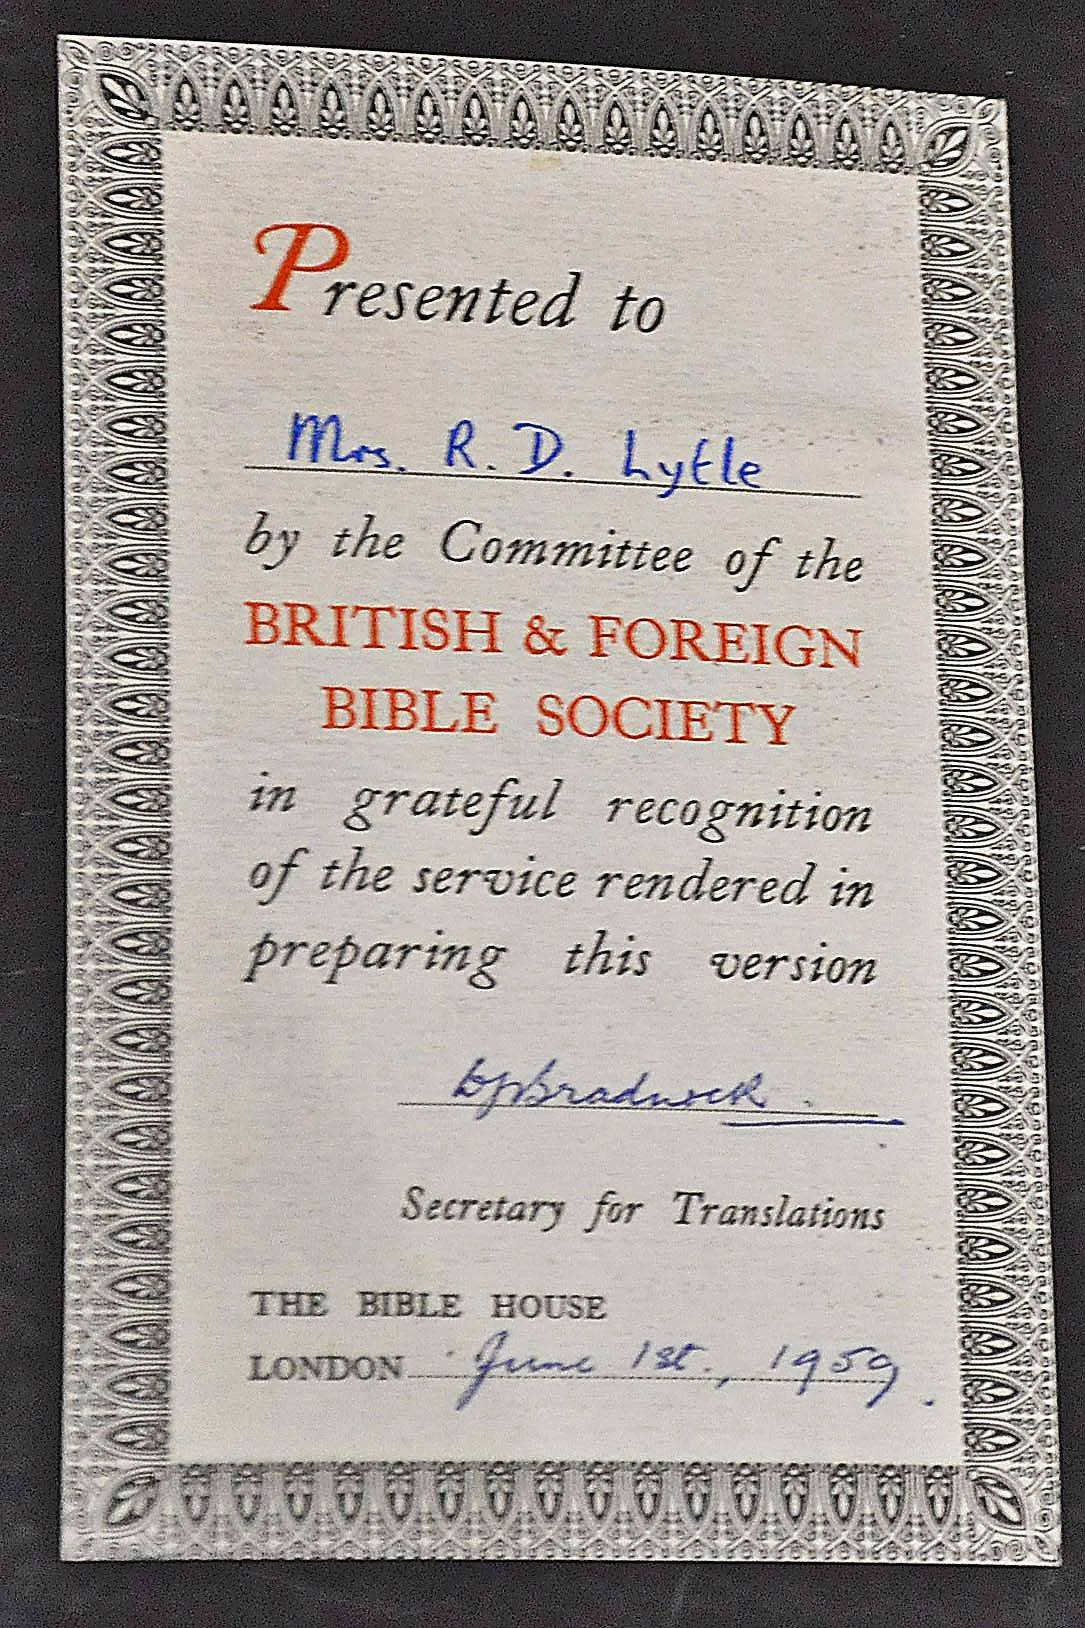 Barbara Lytle of Batavia received this certificate in recognition of her work translating the Book of Acts into Kpelle, the language of the tribe she worked with in West Africa. The book was later published by the British and Foreign Bible Society for other missionaries to use.